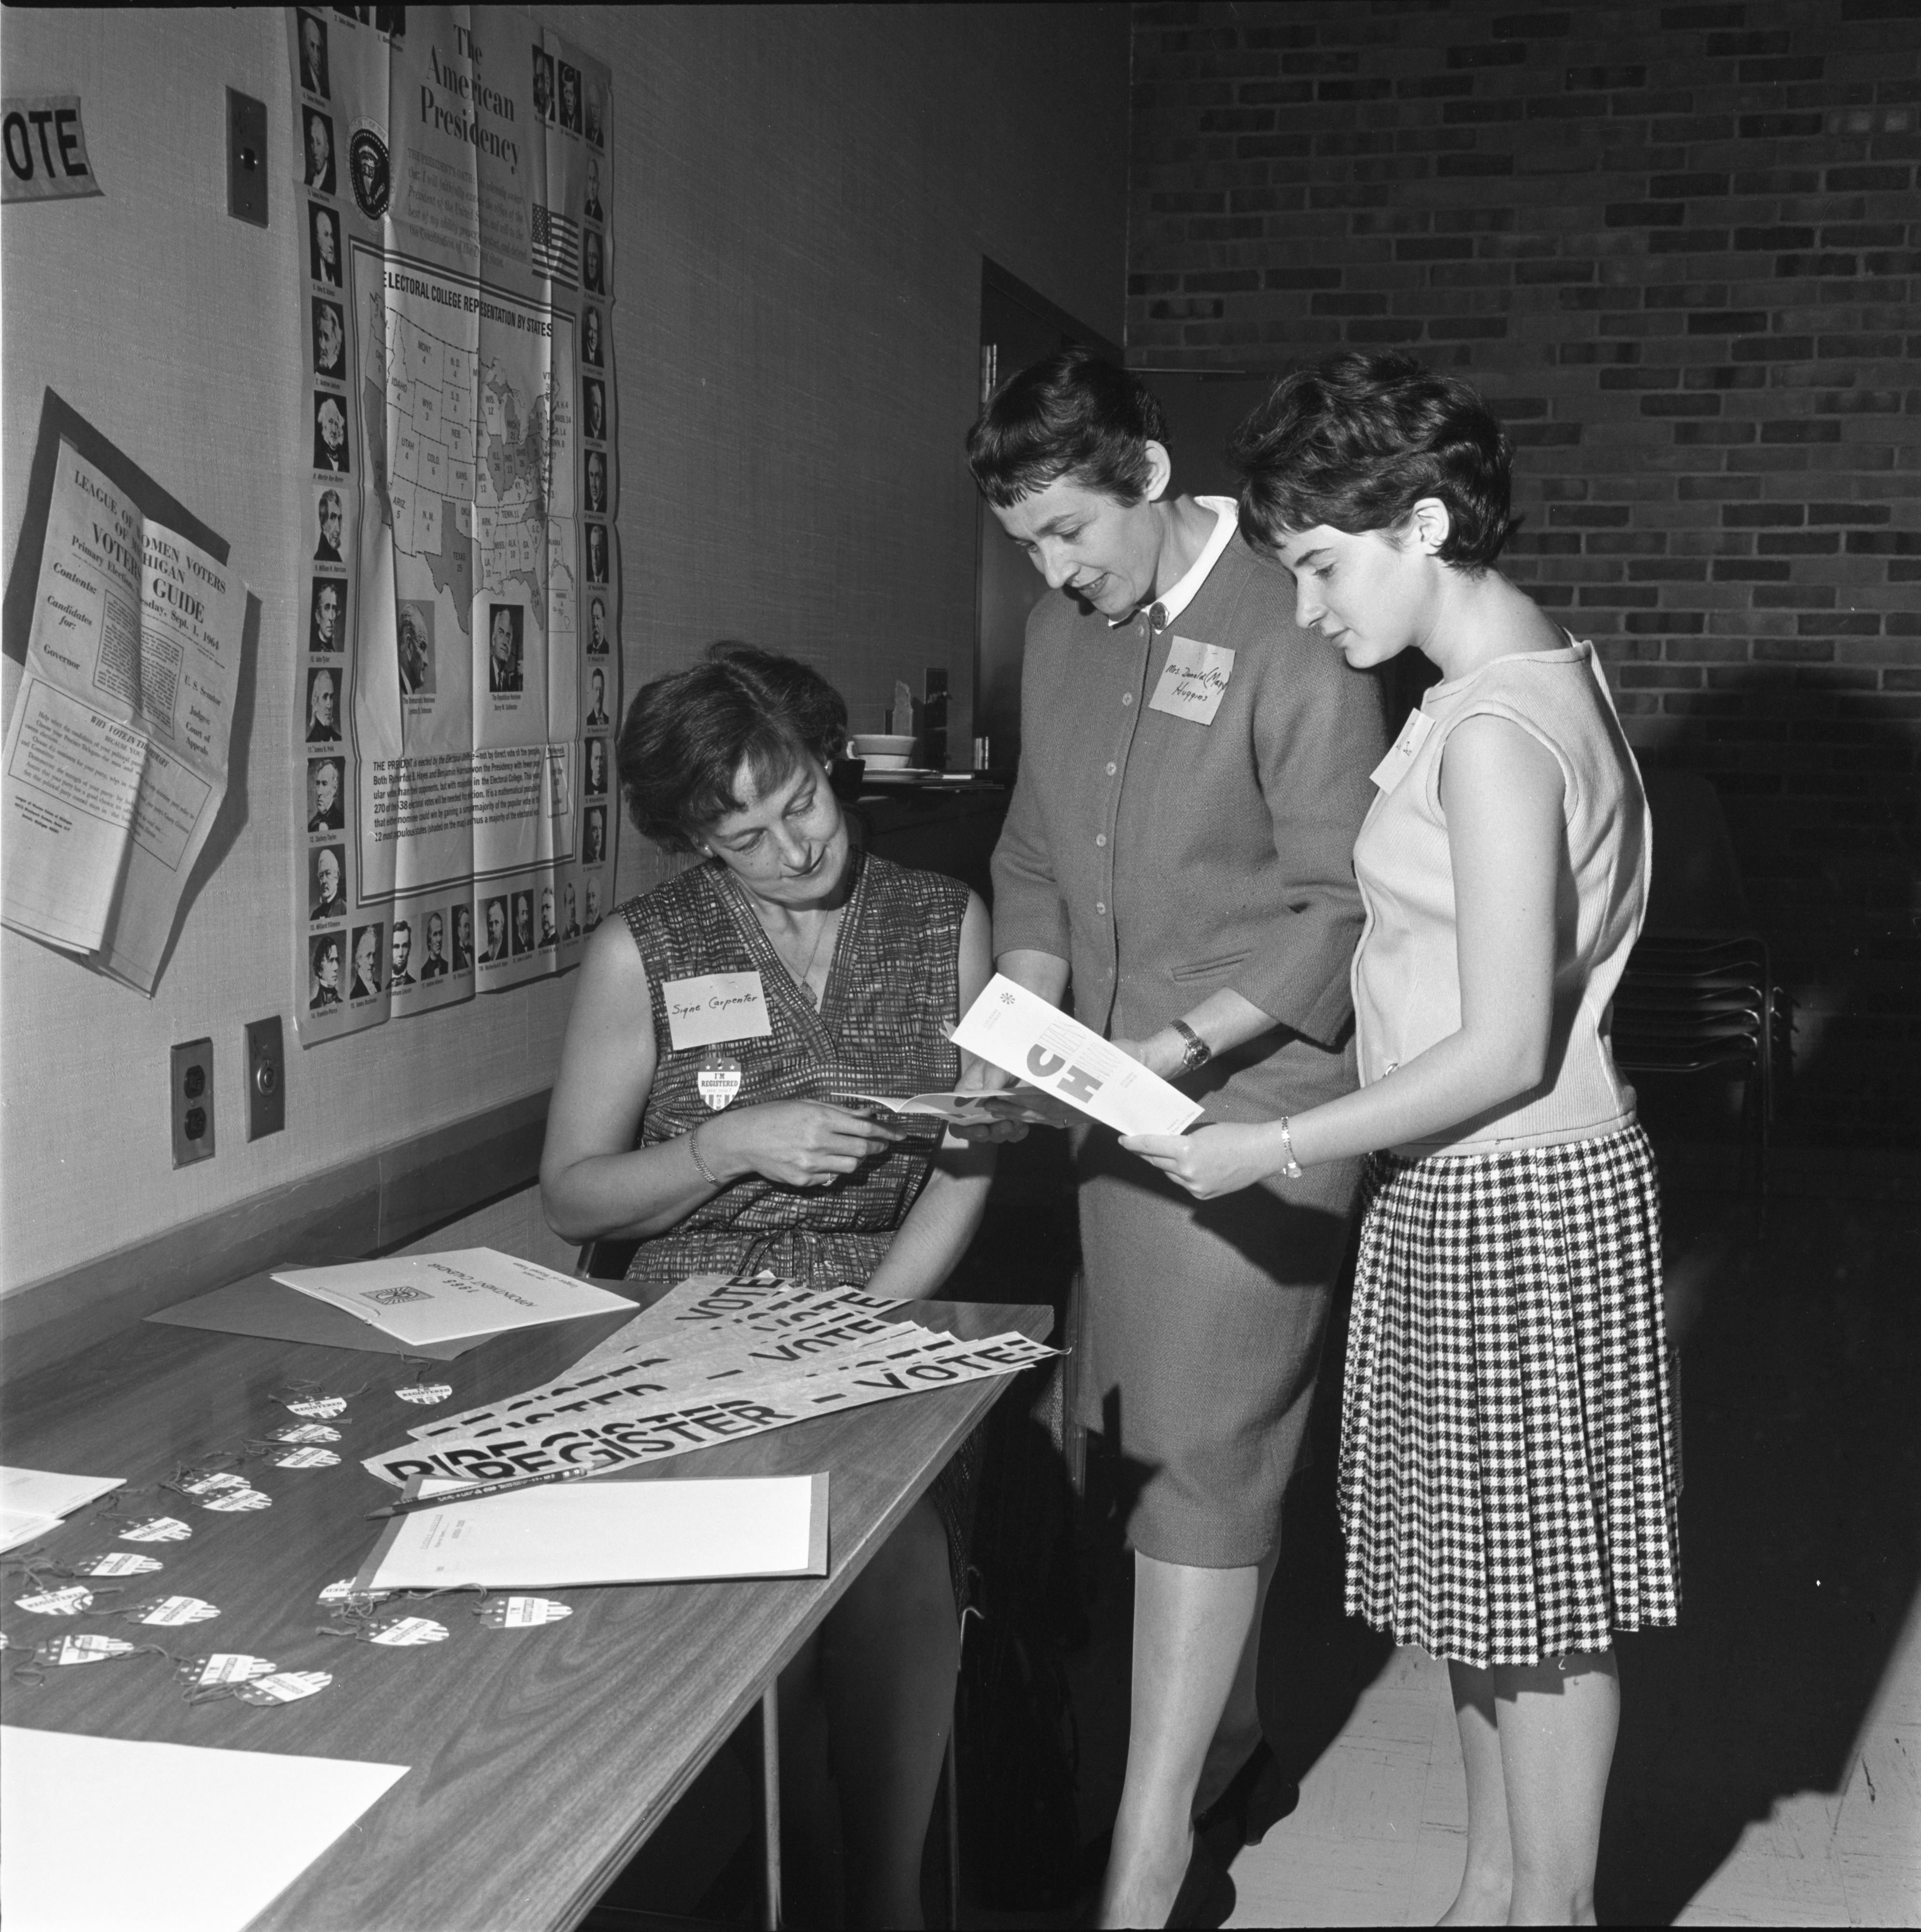 Signe Carpenter, Mary Huggins, & Liz Soss At The League Of Women Voters Annual Meeting, September 1964 image